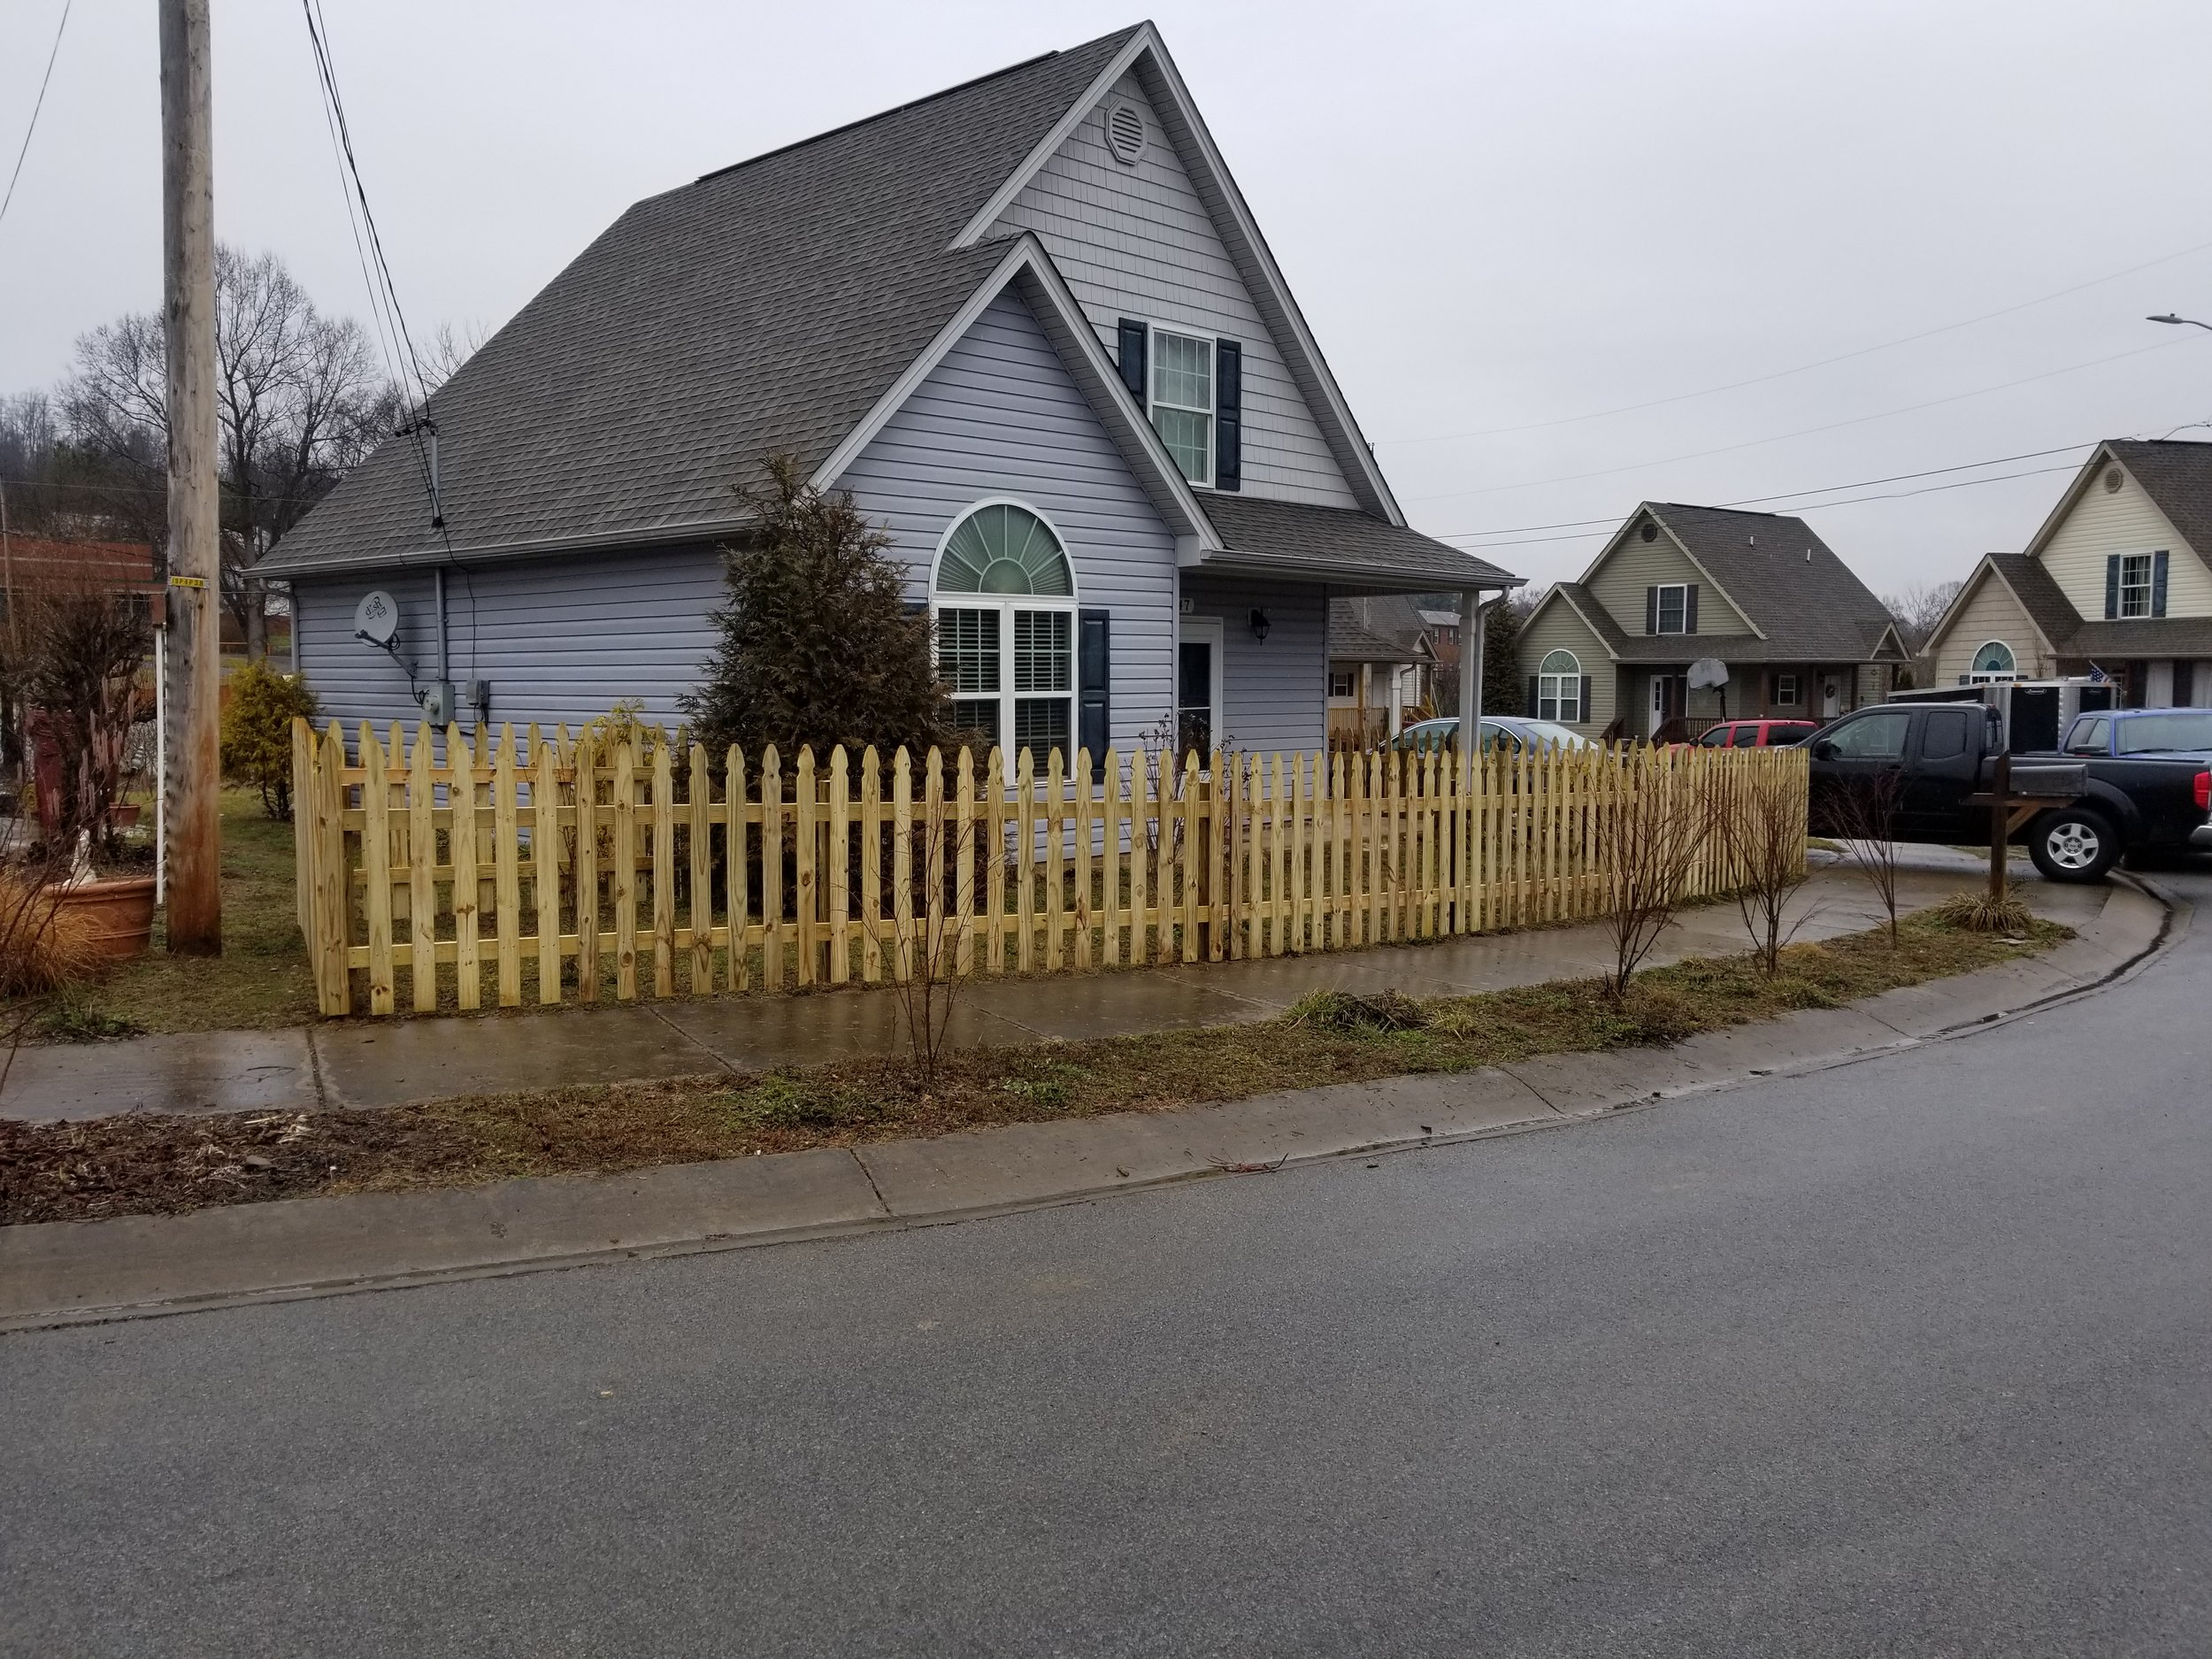 New Picket Wood Fence 120 Feet (Johnson City, Tn)